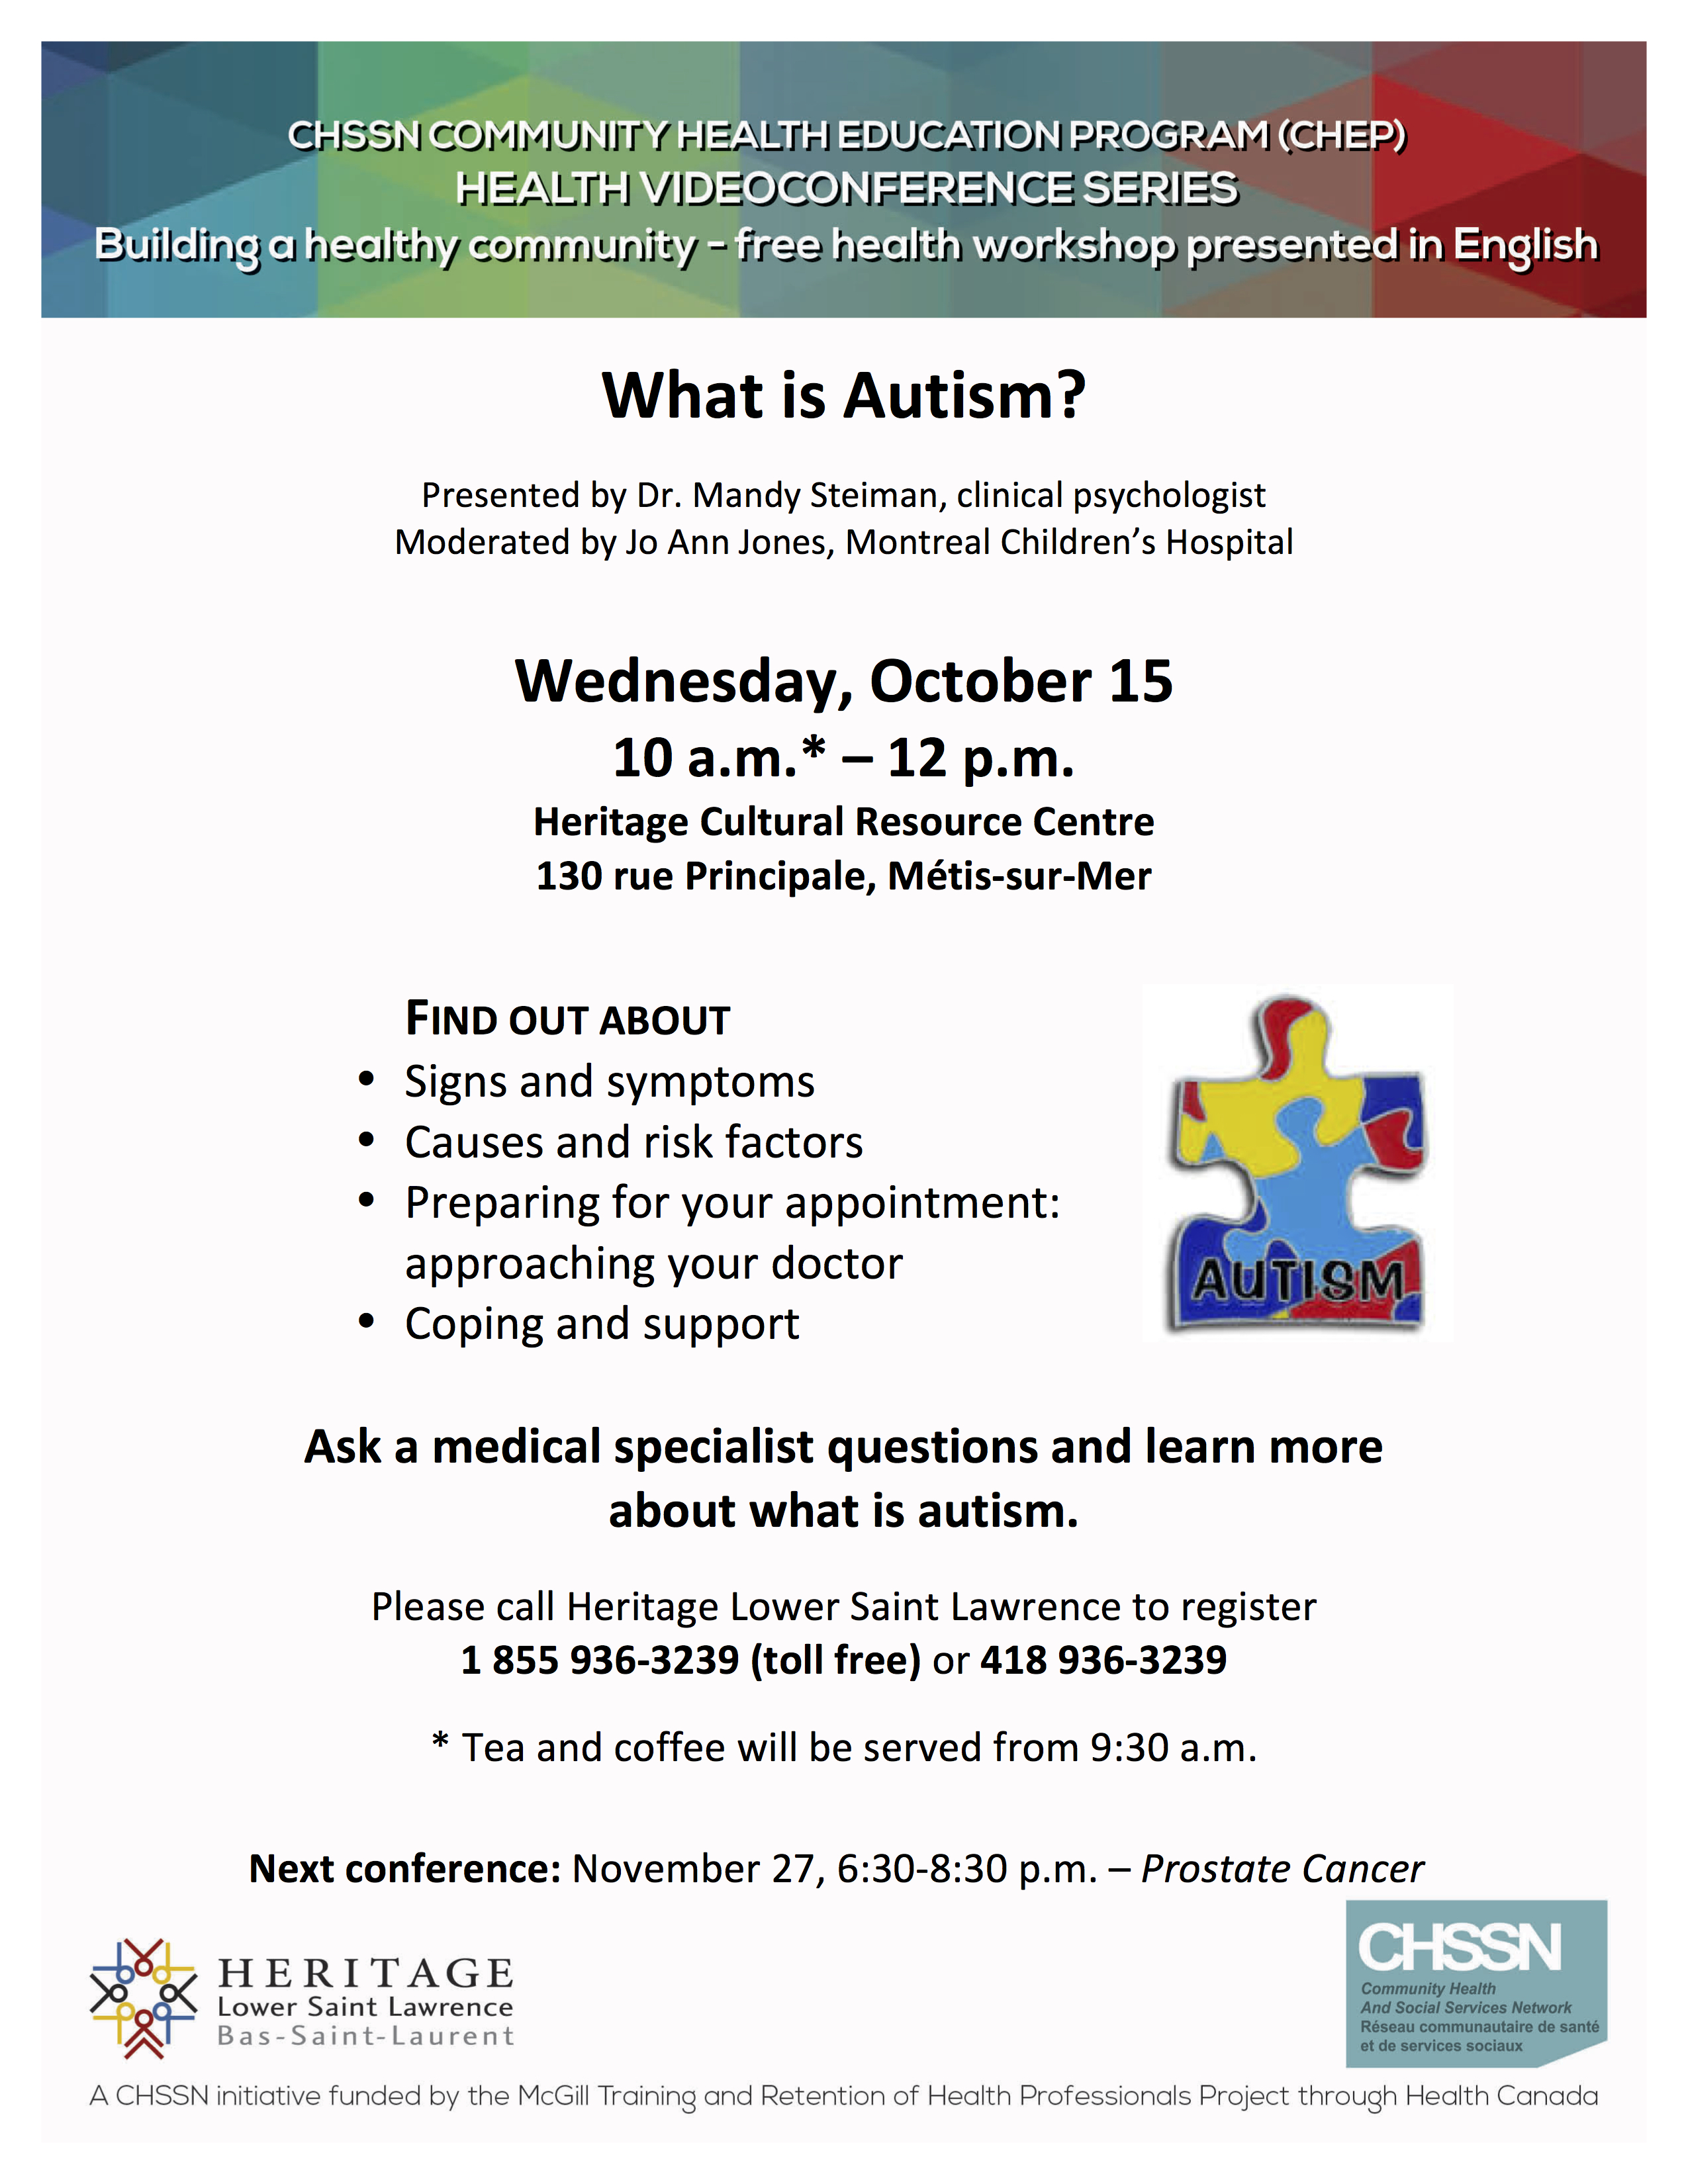 What is Autism – Free Videoconference